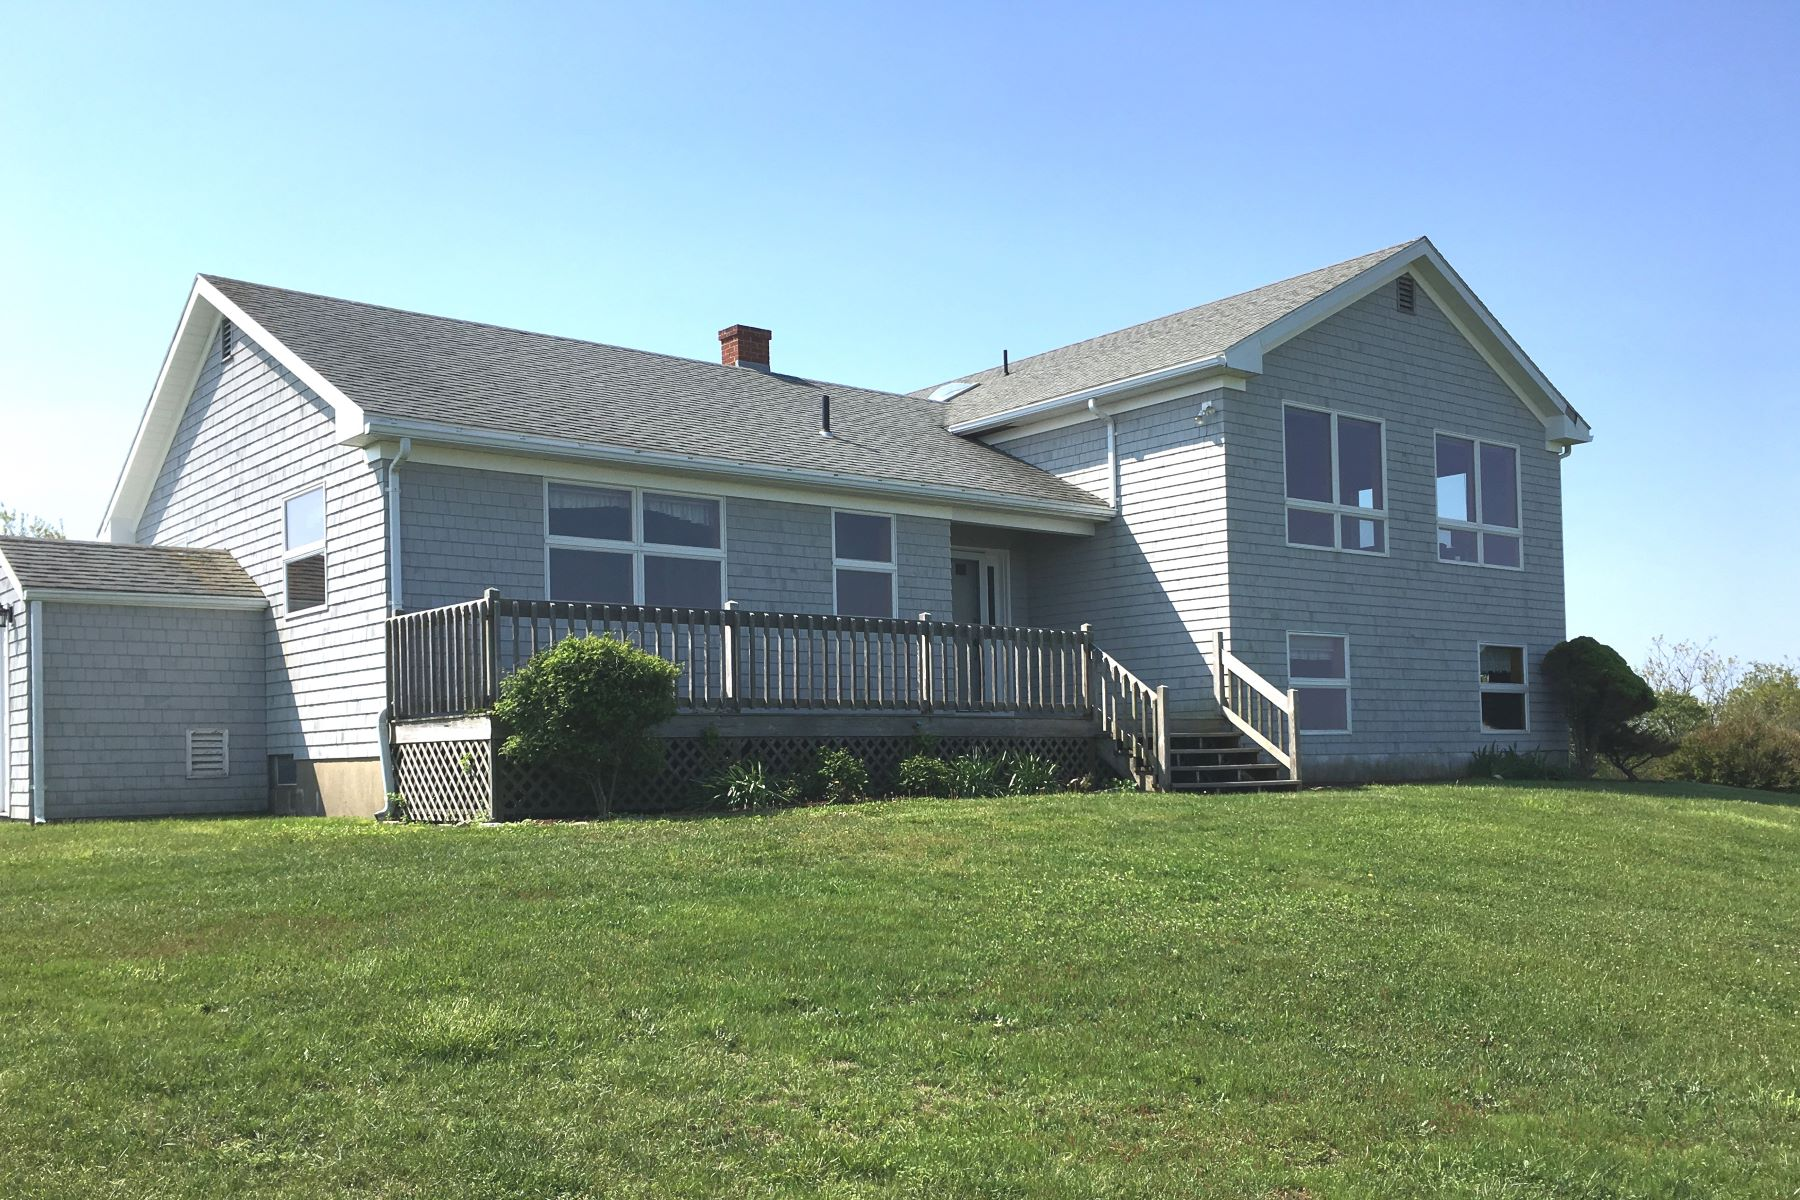 Single Family Homes for Sale at Sanchez 1143 Corn Neck Road, Block Island, Rhode Island 02807 United States